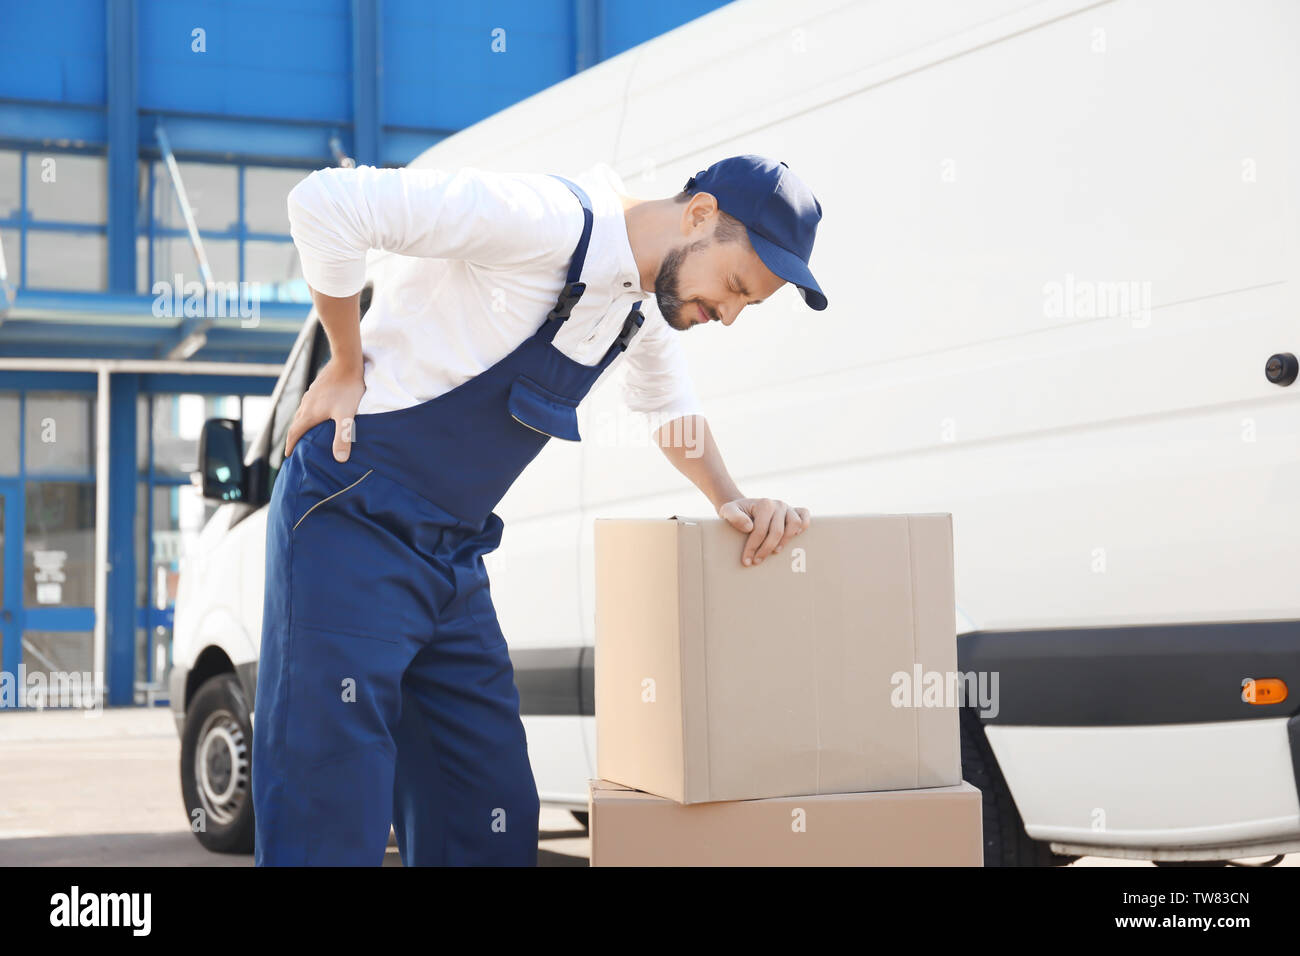 Delivery man suffering from pain after moving heavy box near car - Stock Image